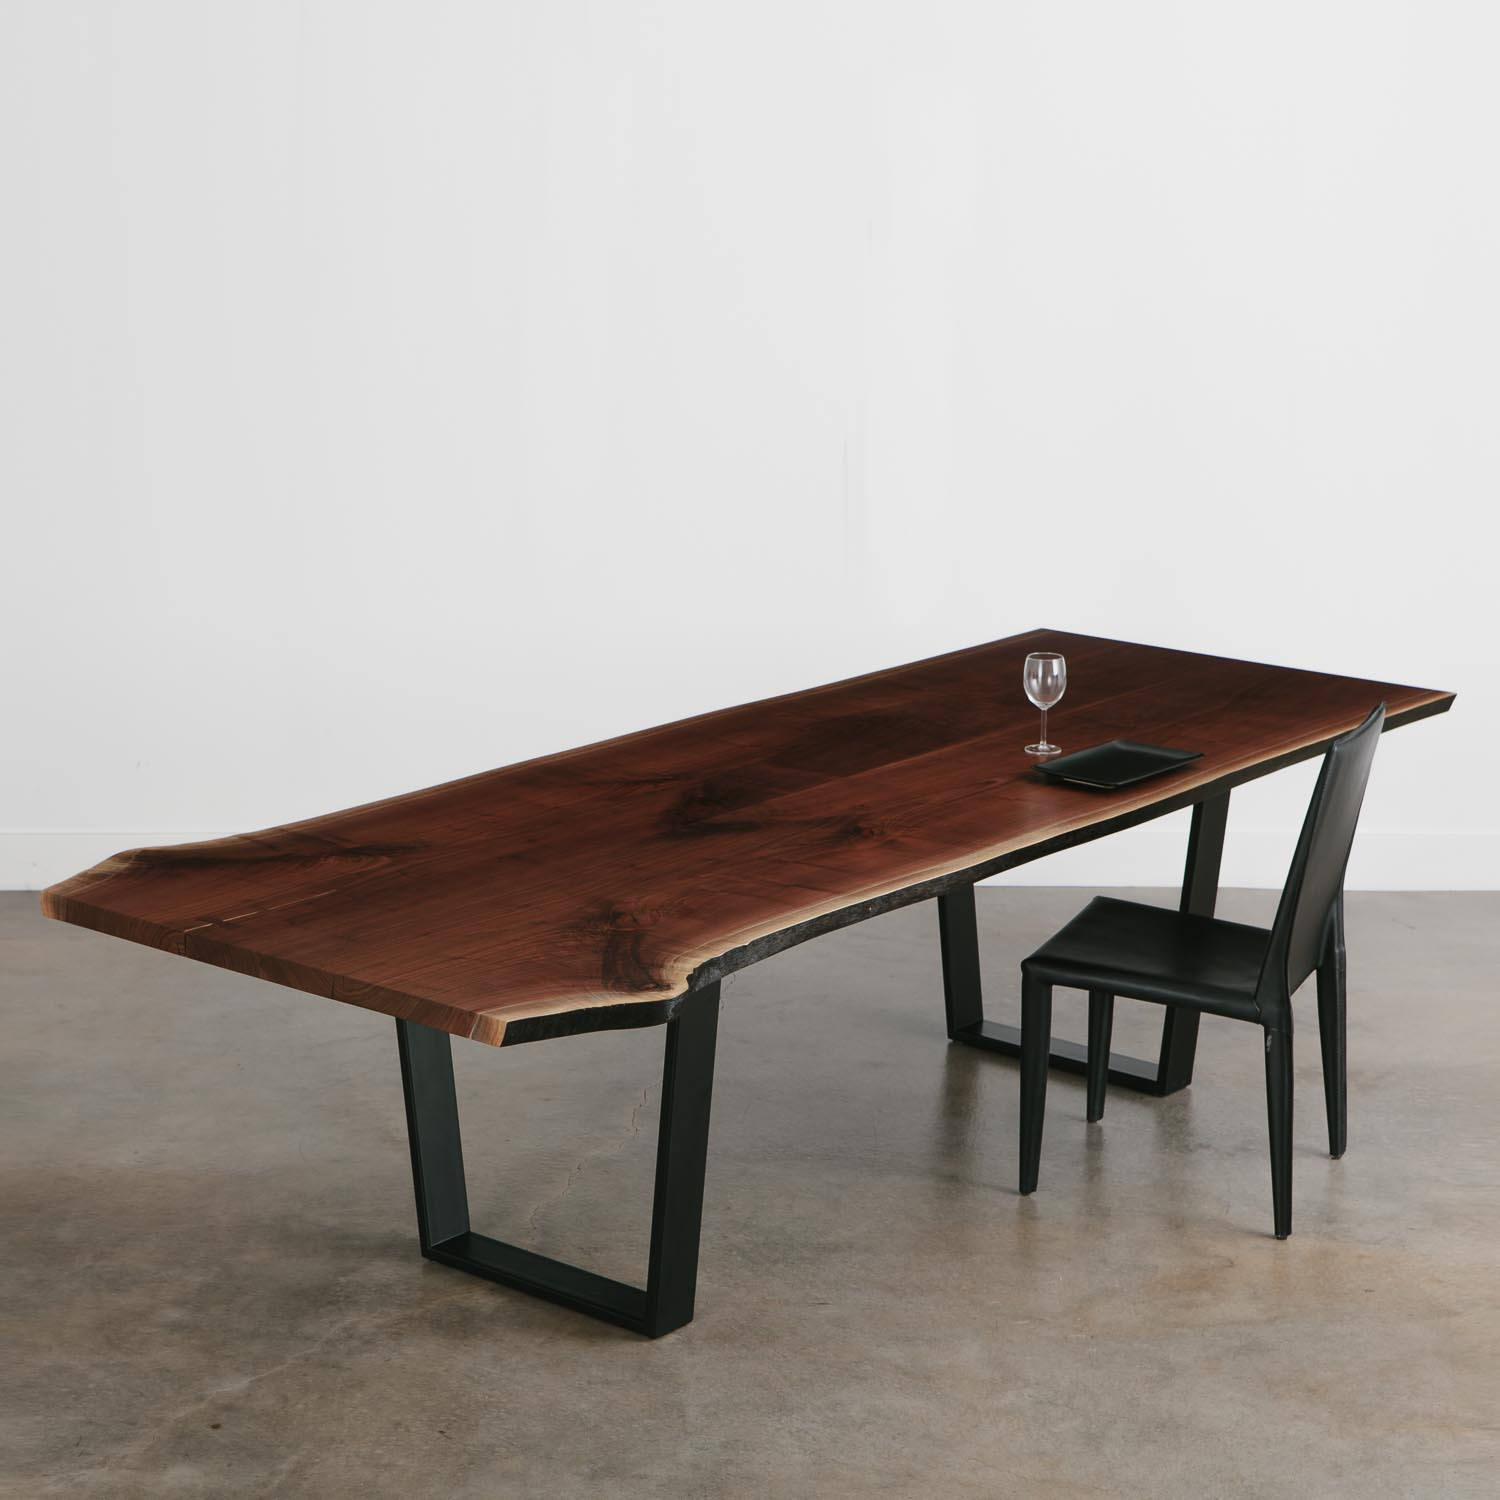 Walnut Dining Table - Elko Hardwoods